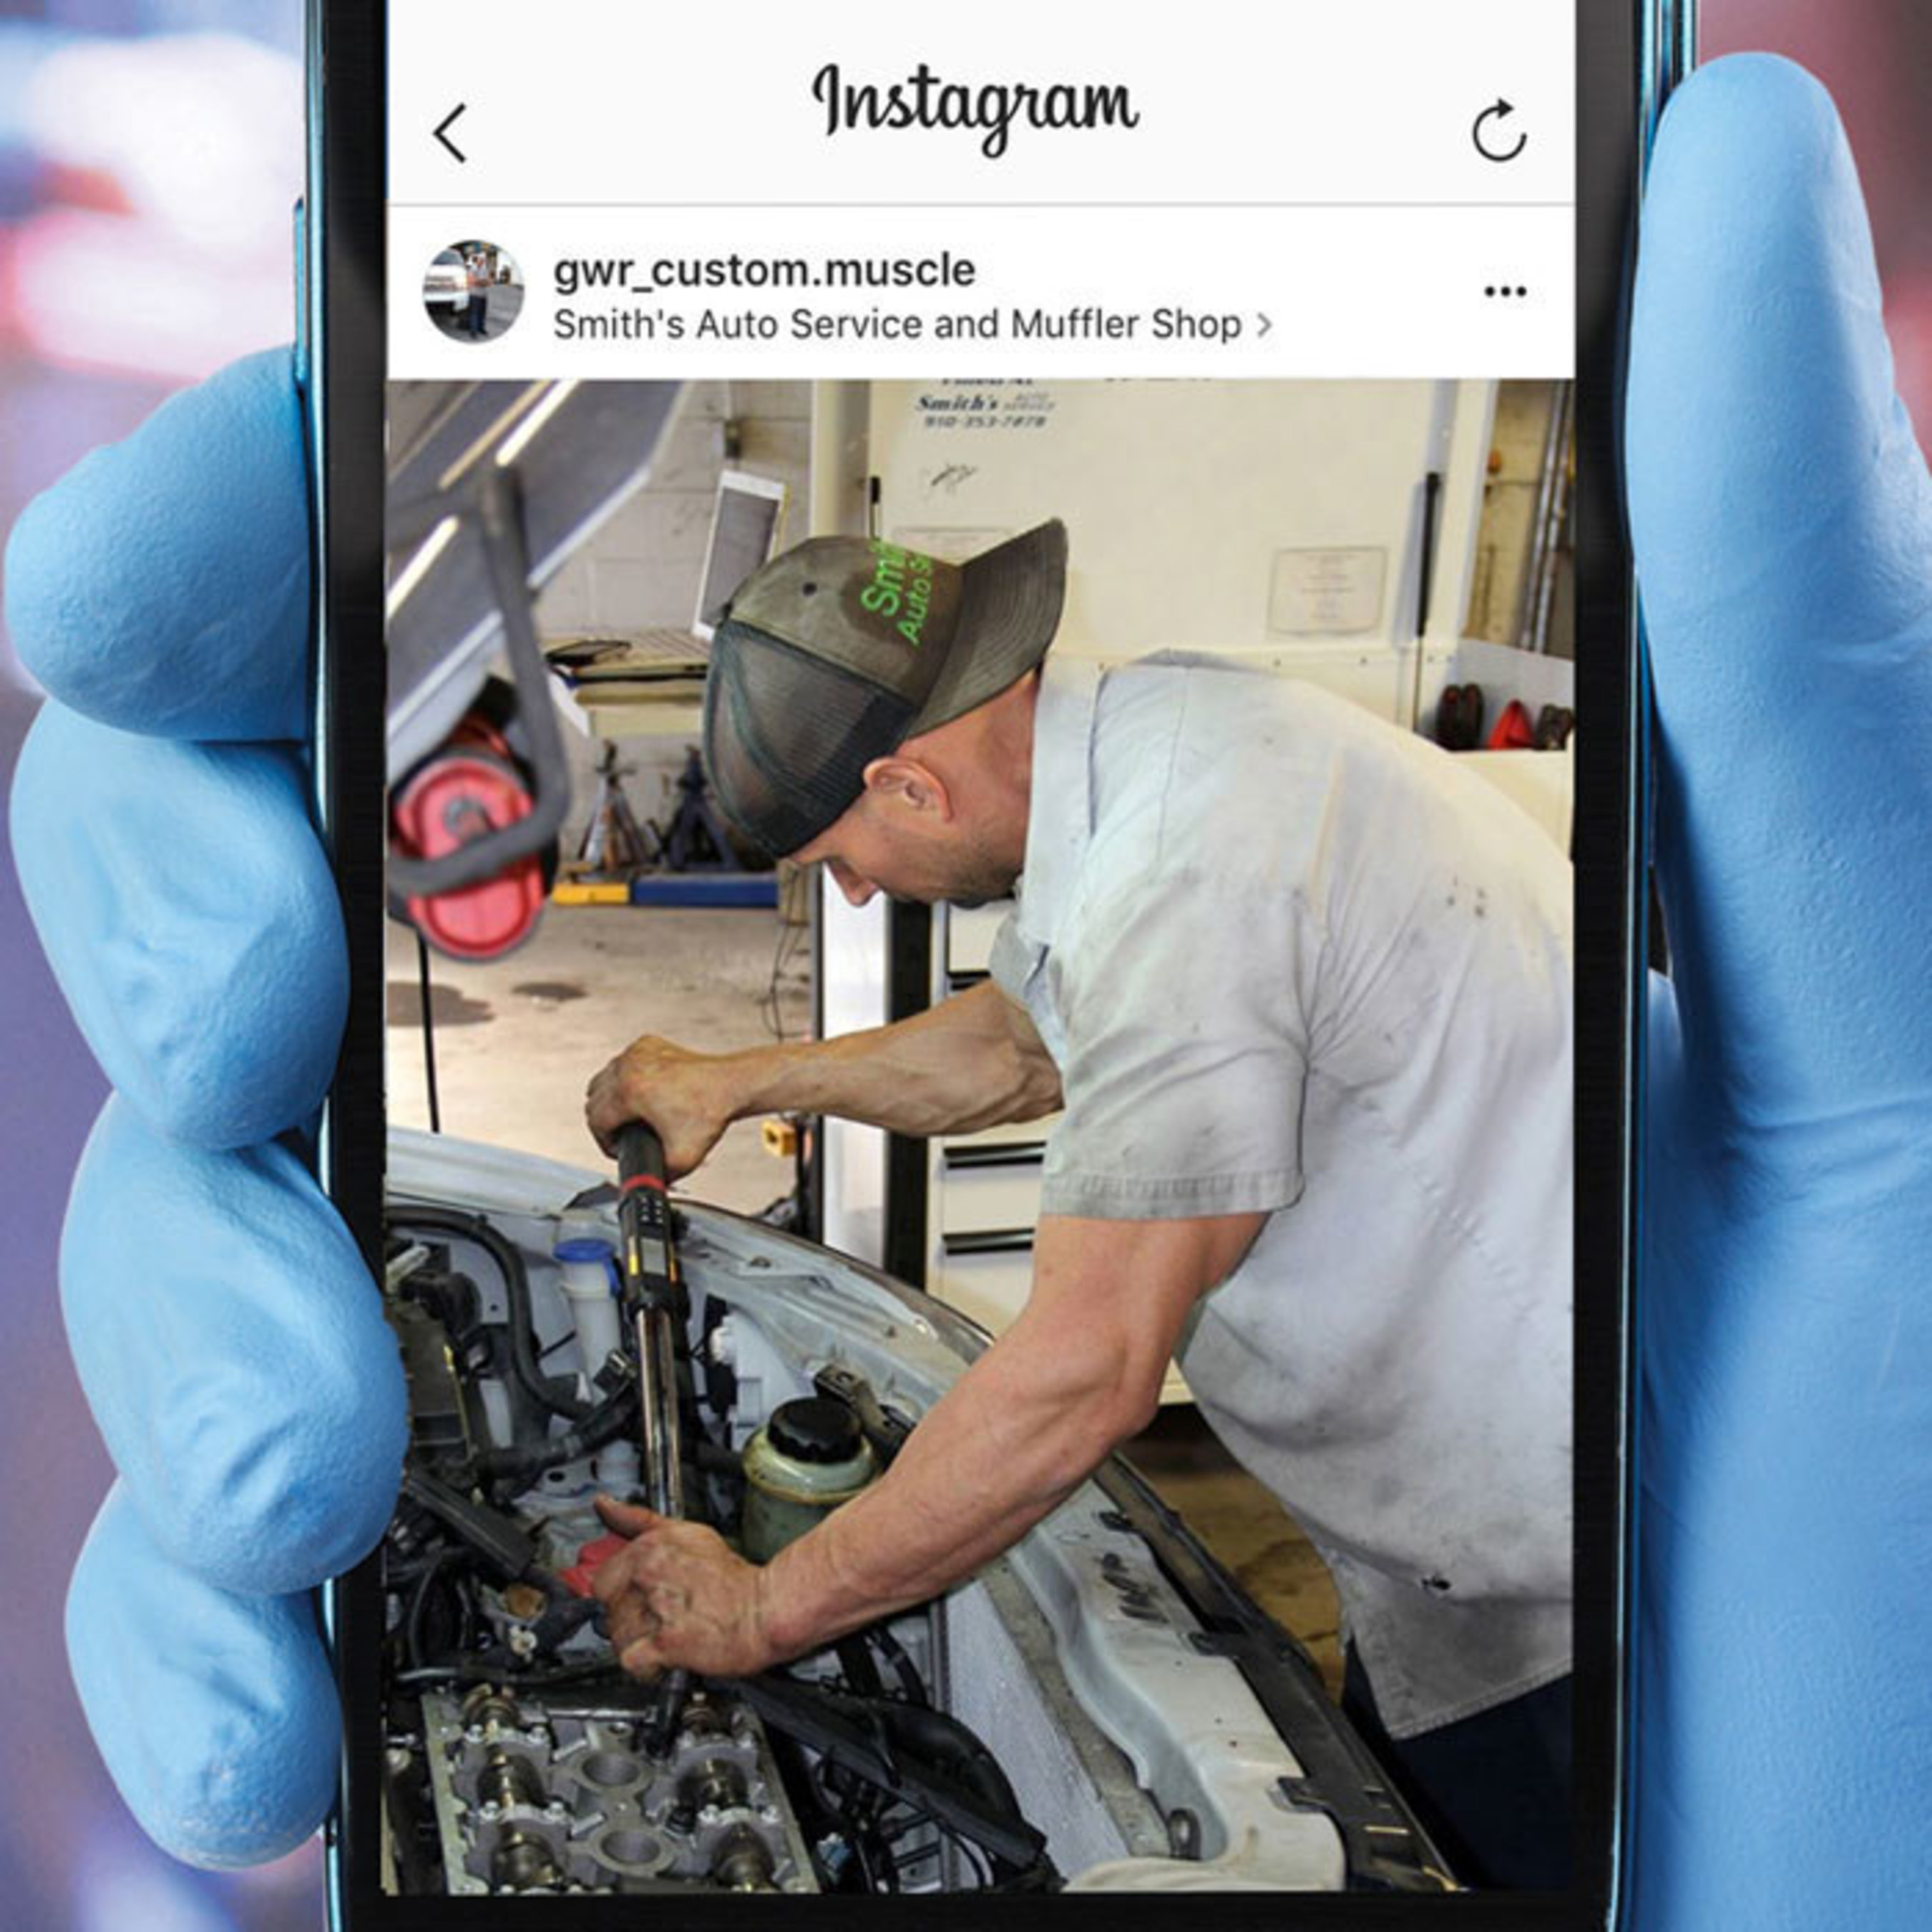 """TechSmart's """"Show Us Your Shop"""" contest awarded technicians for sharing photos of their shops on Instagram."""